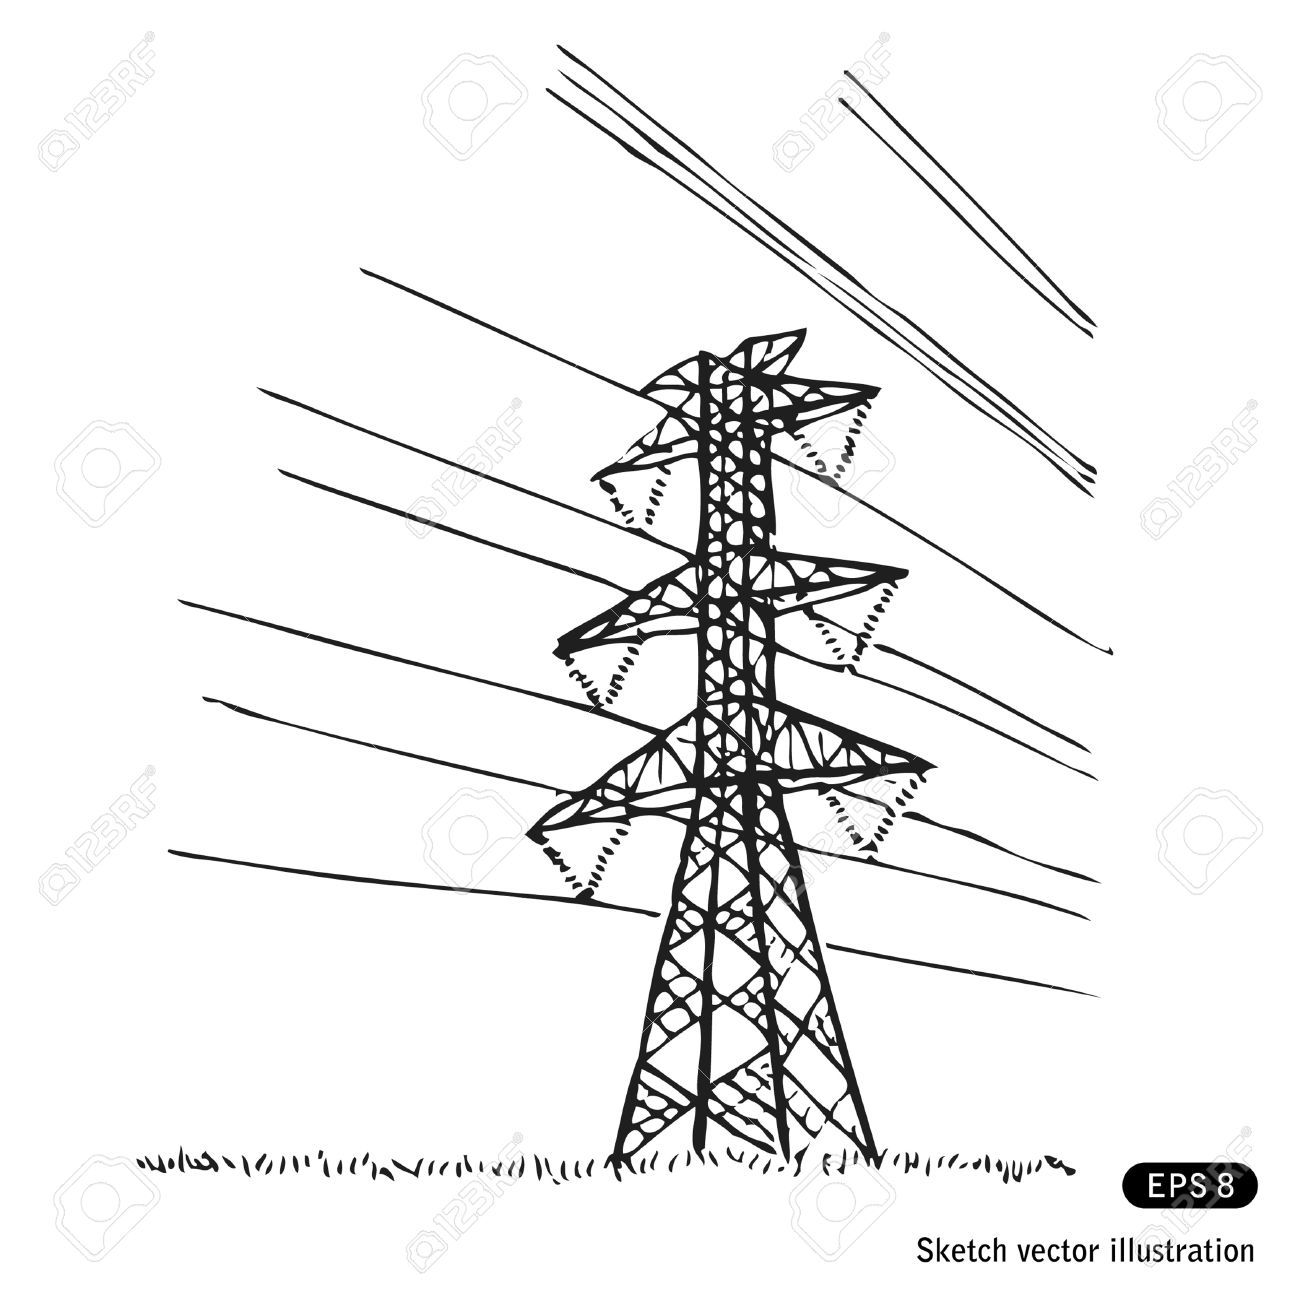 Electricity Pylon Clipart